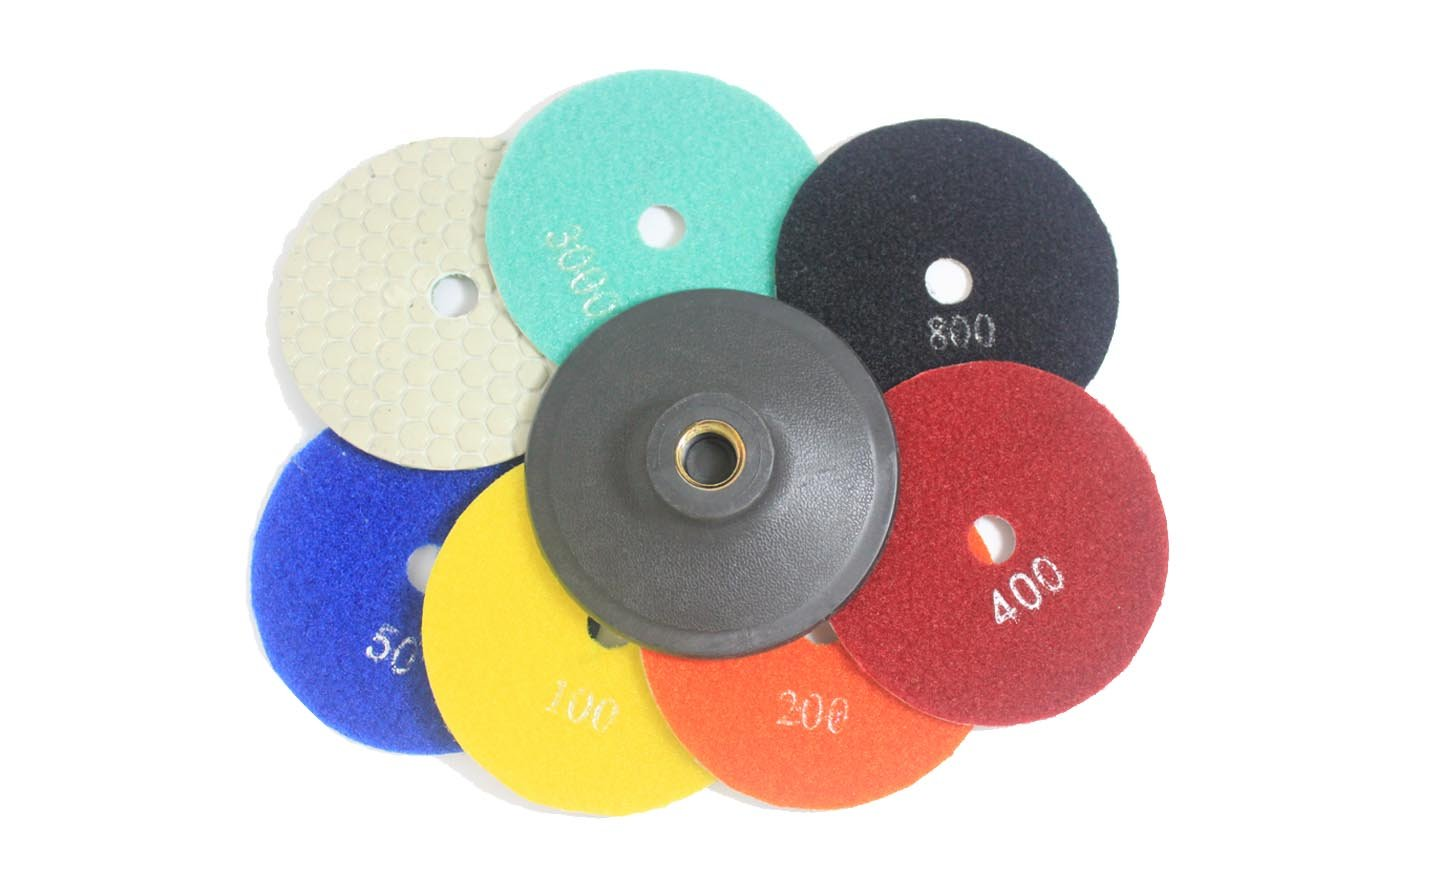 Shine Peak Diamond Polishing Pads 4 Inch Wet/Dry 7 Piece Set & Backer Pad Granite Concrete (Dry Use) shine peak group limited